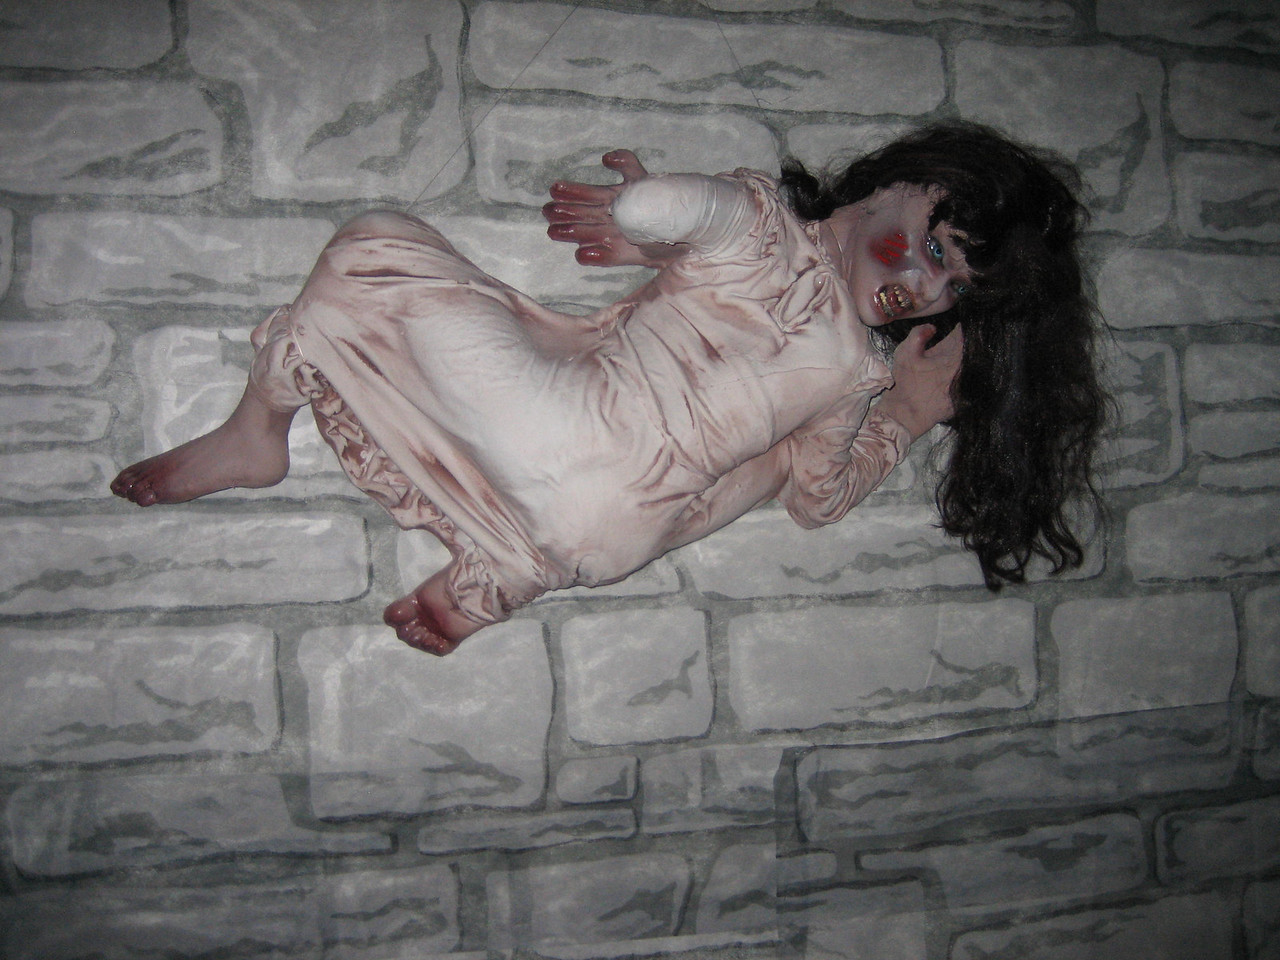 exorcist girl on the wall